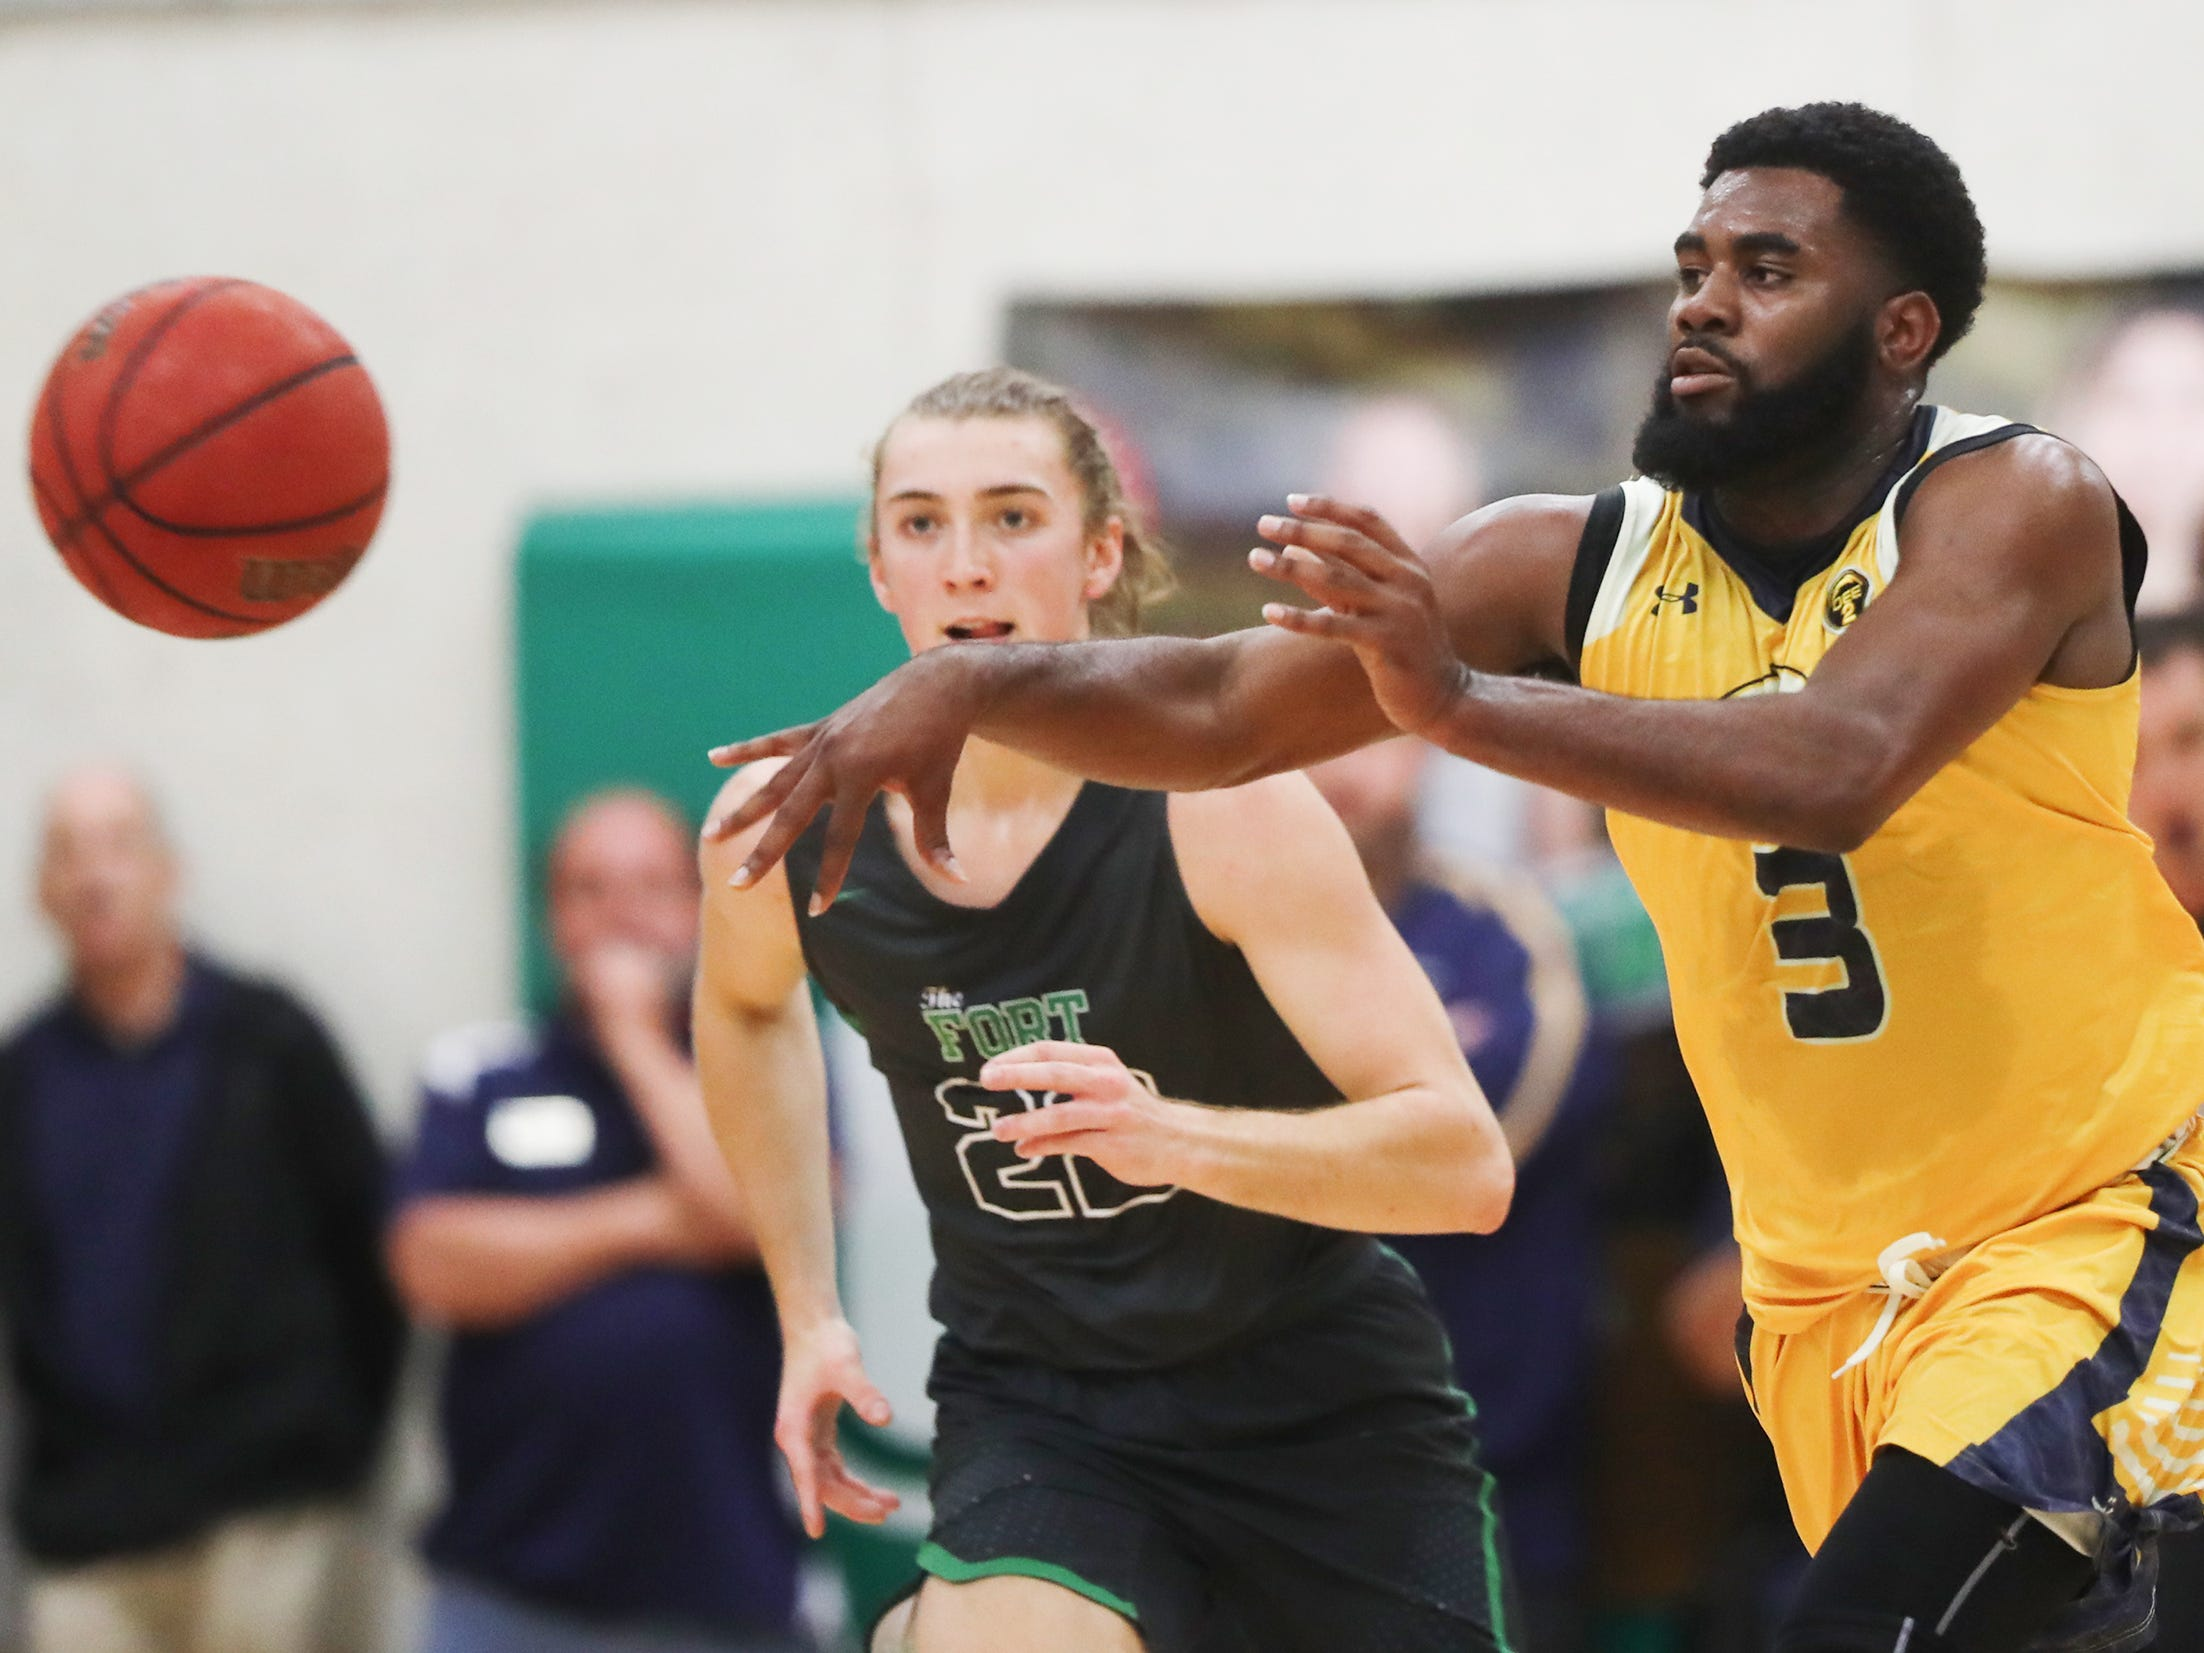 Lehigh High School's Delshawn Green passes against Fort Myers on Friday in the Class 7A-11 championship game in Fort Myers. Fort Myers beat Lehigh 59-56.